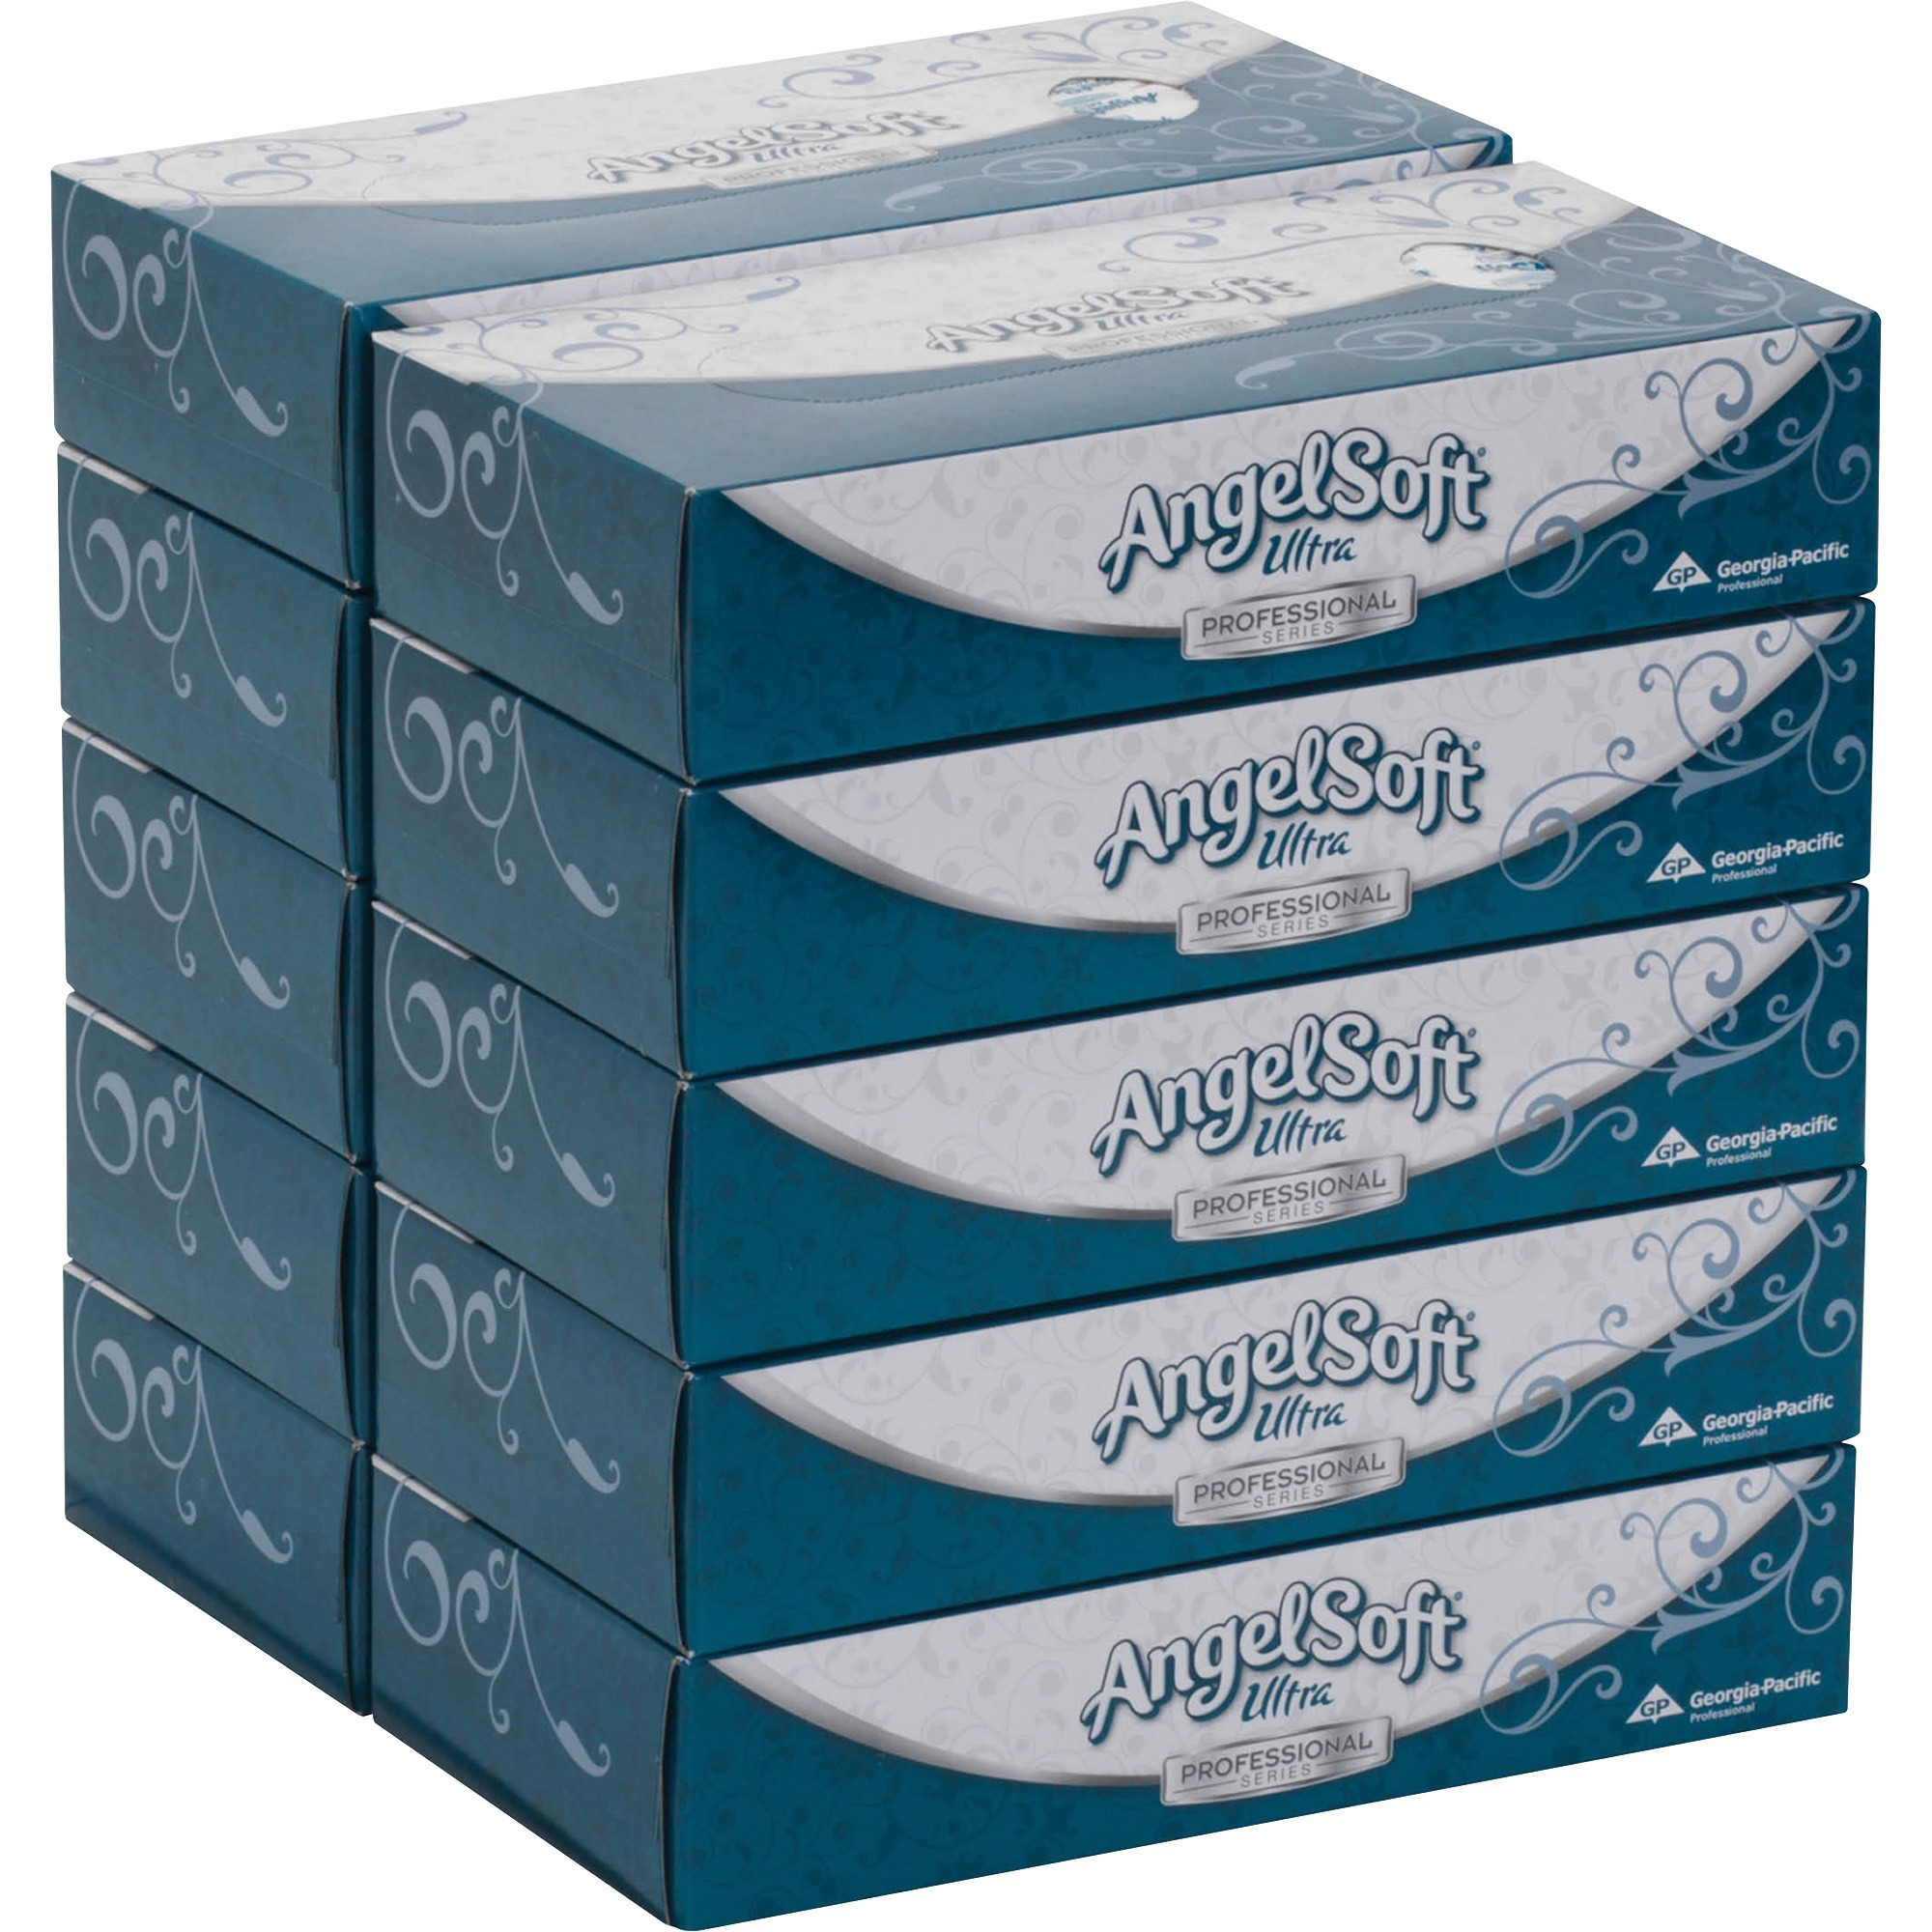 Angel Soft Ultra Professional Series, GPC4836014, Facial Tissue in Flat Box, 10 / Carton, White